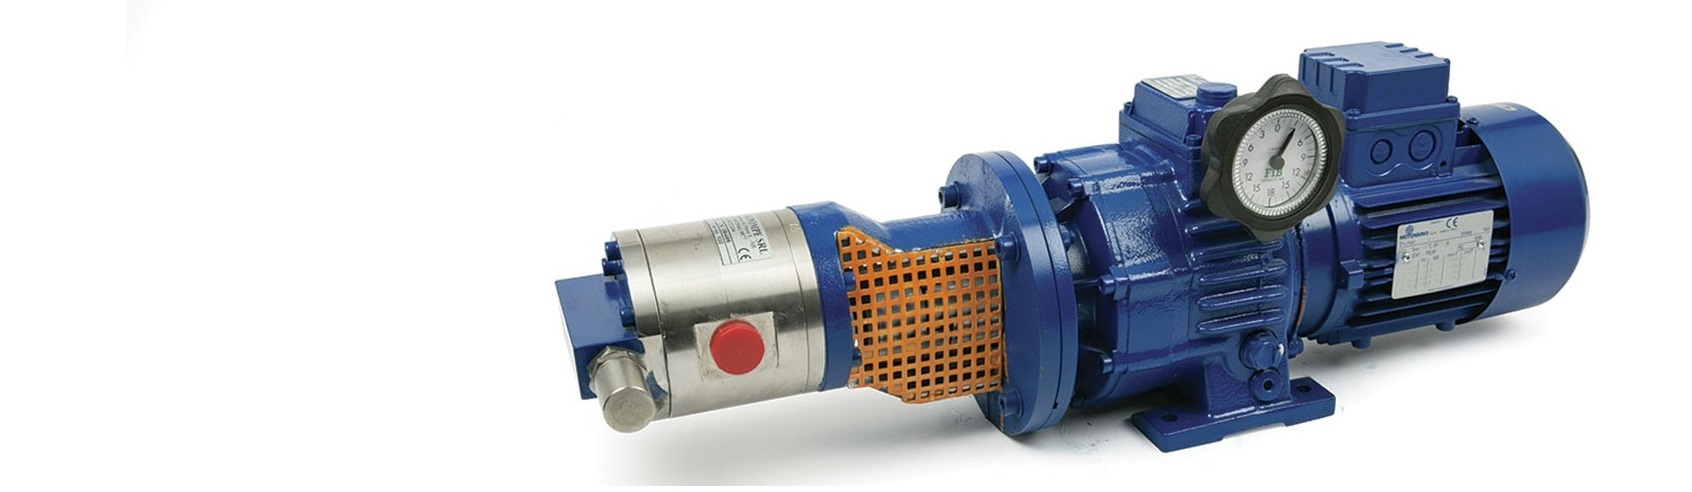 Gear pump MOZER IF